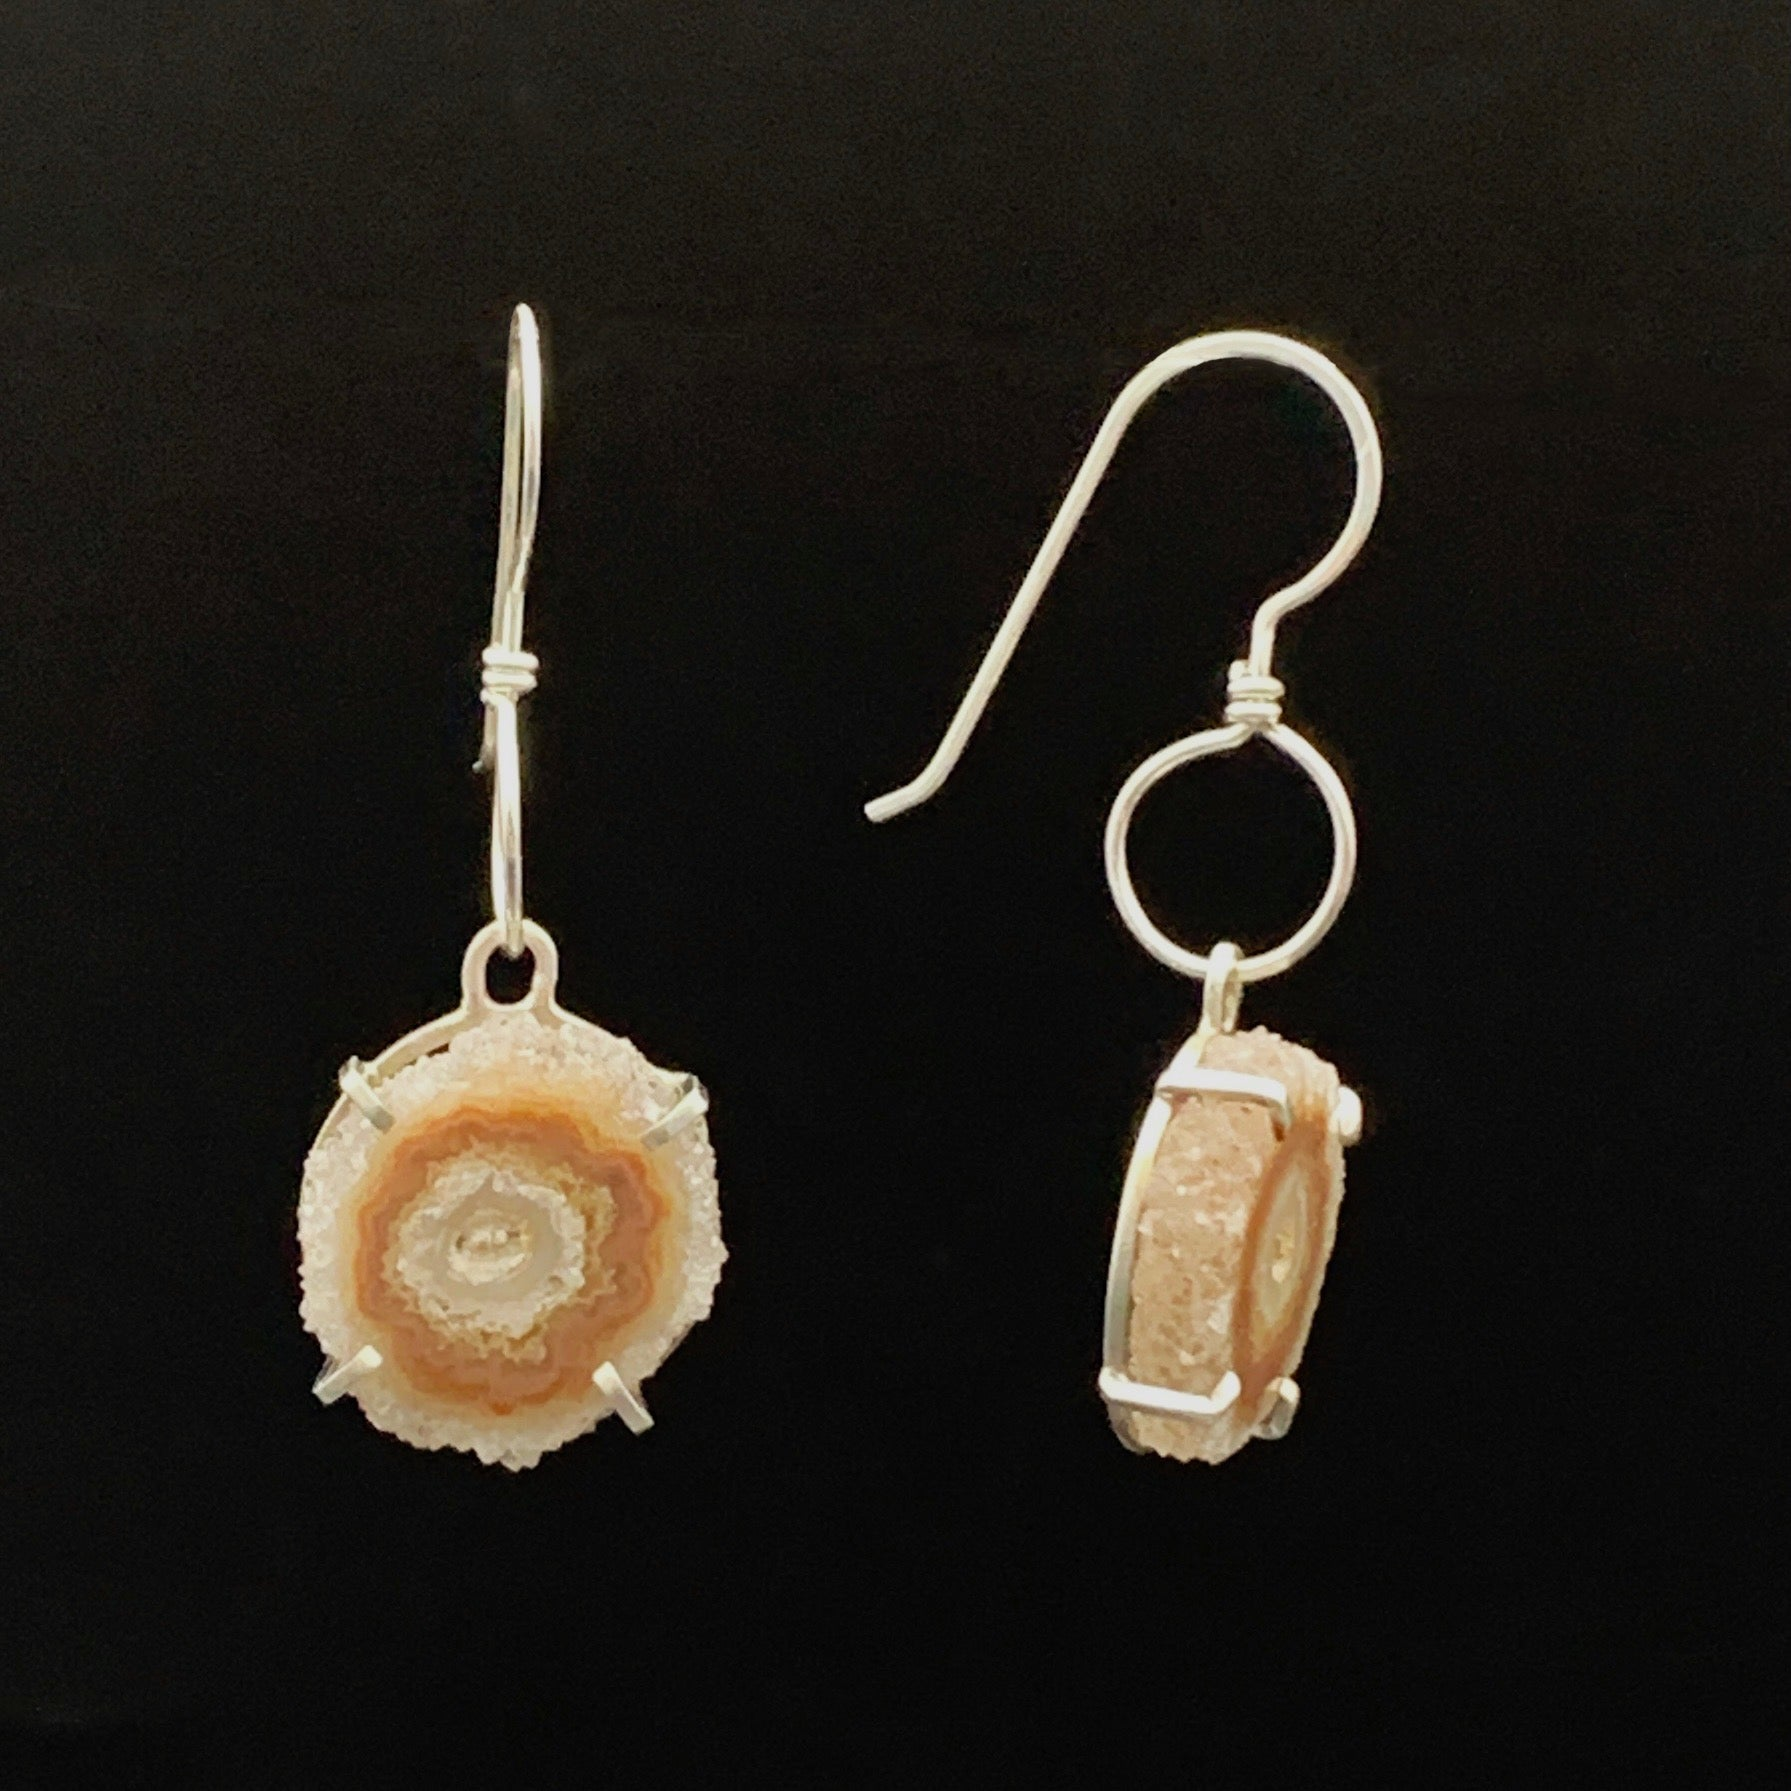 Quartz Crystal Earring with Carnelian Drops